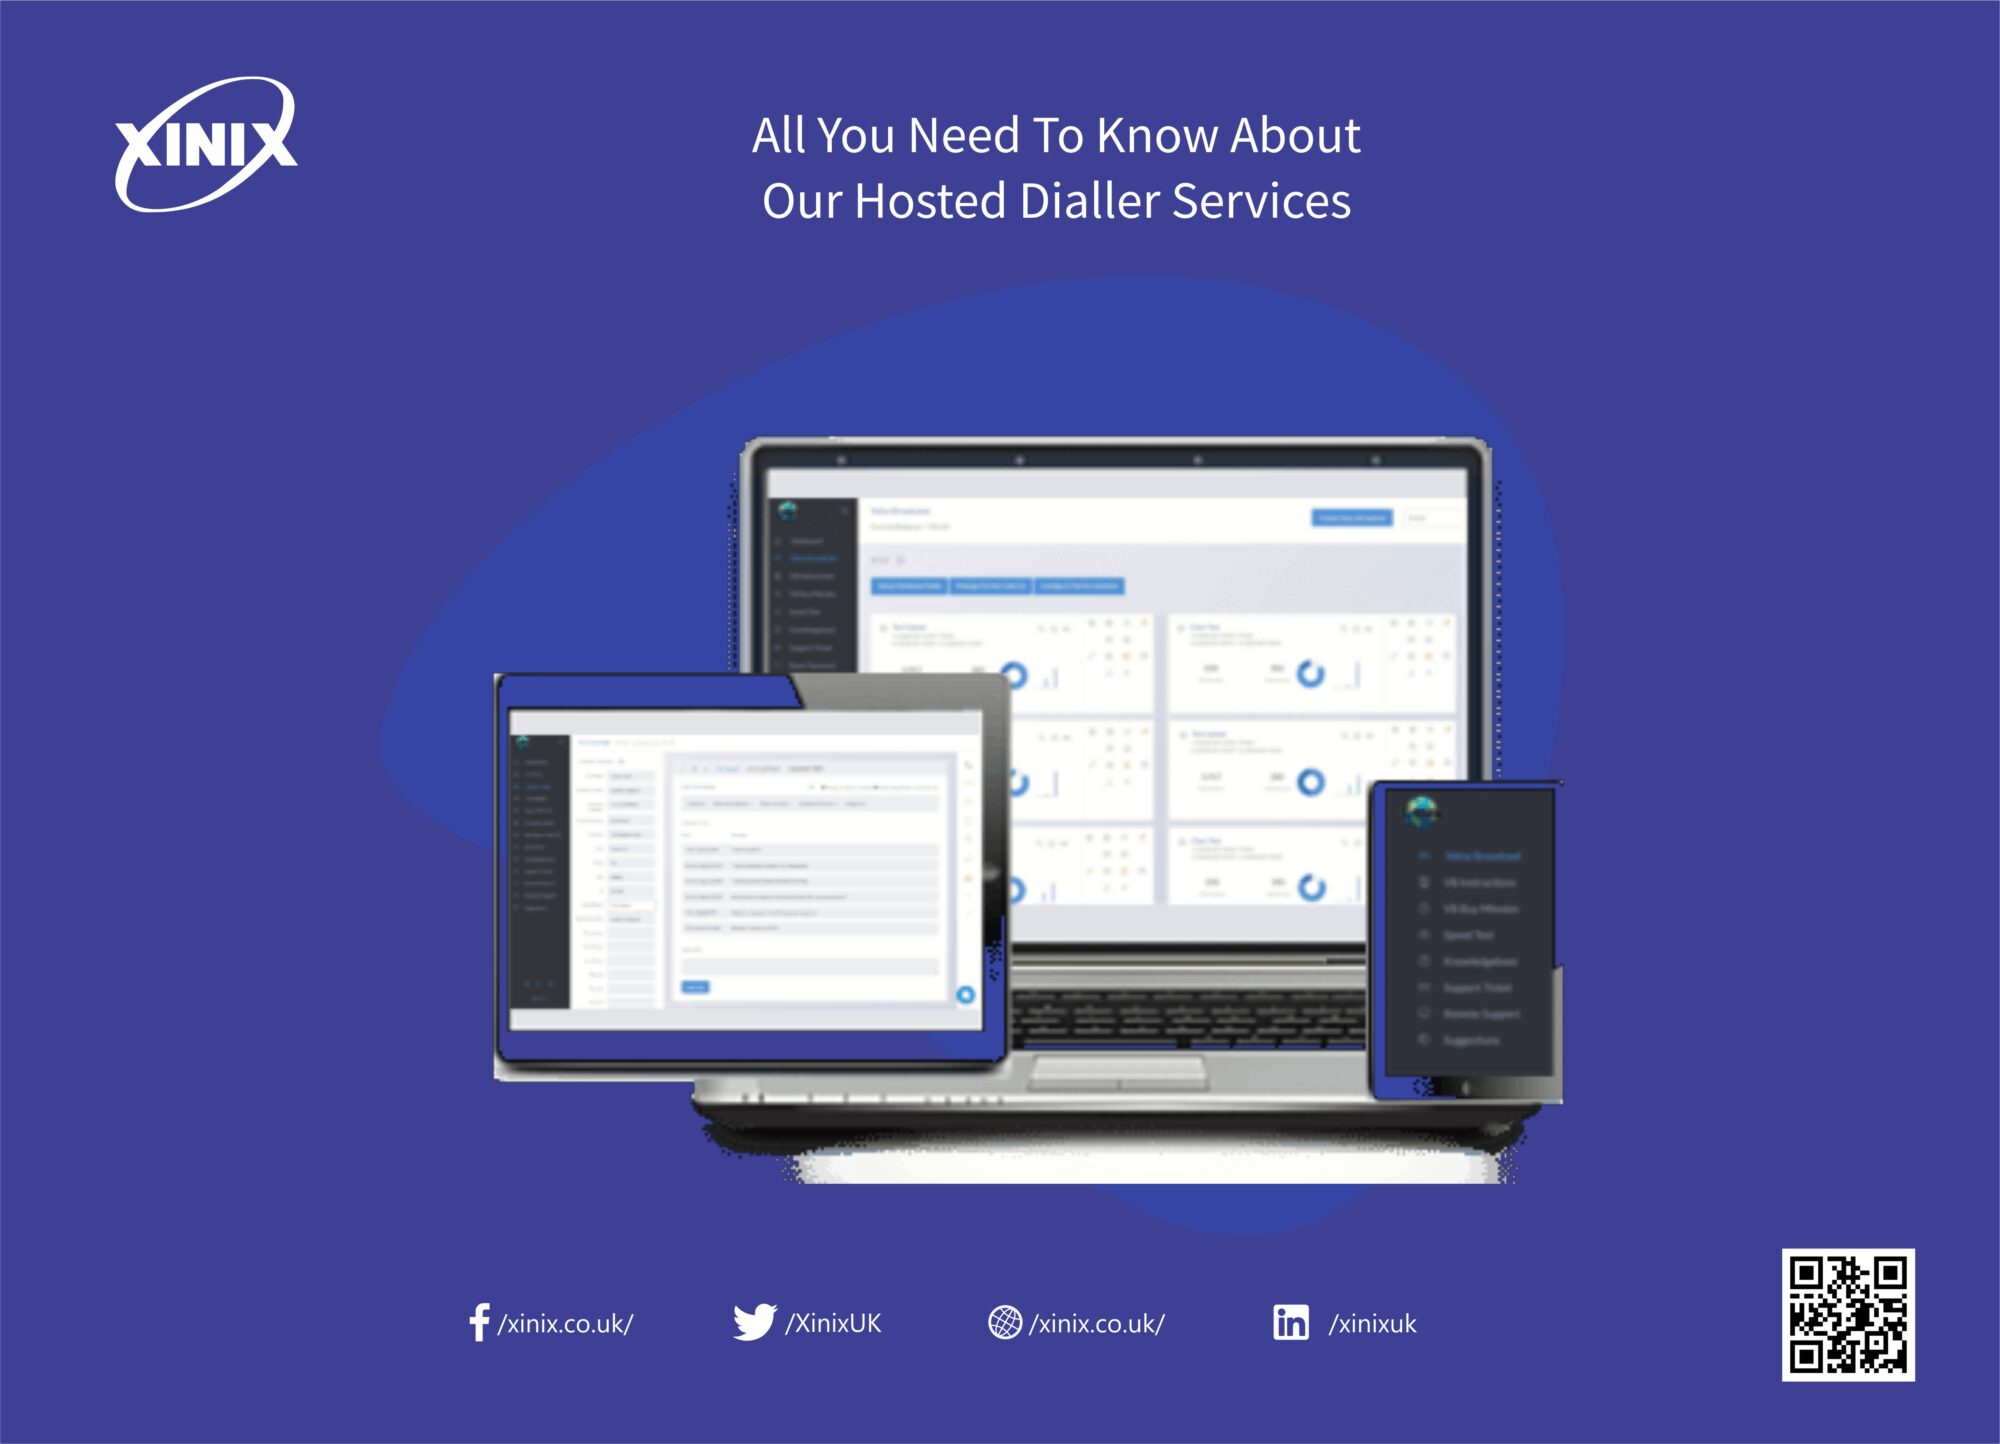 All You Need To Know About Our Hosted Dialler Services